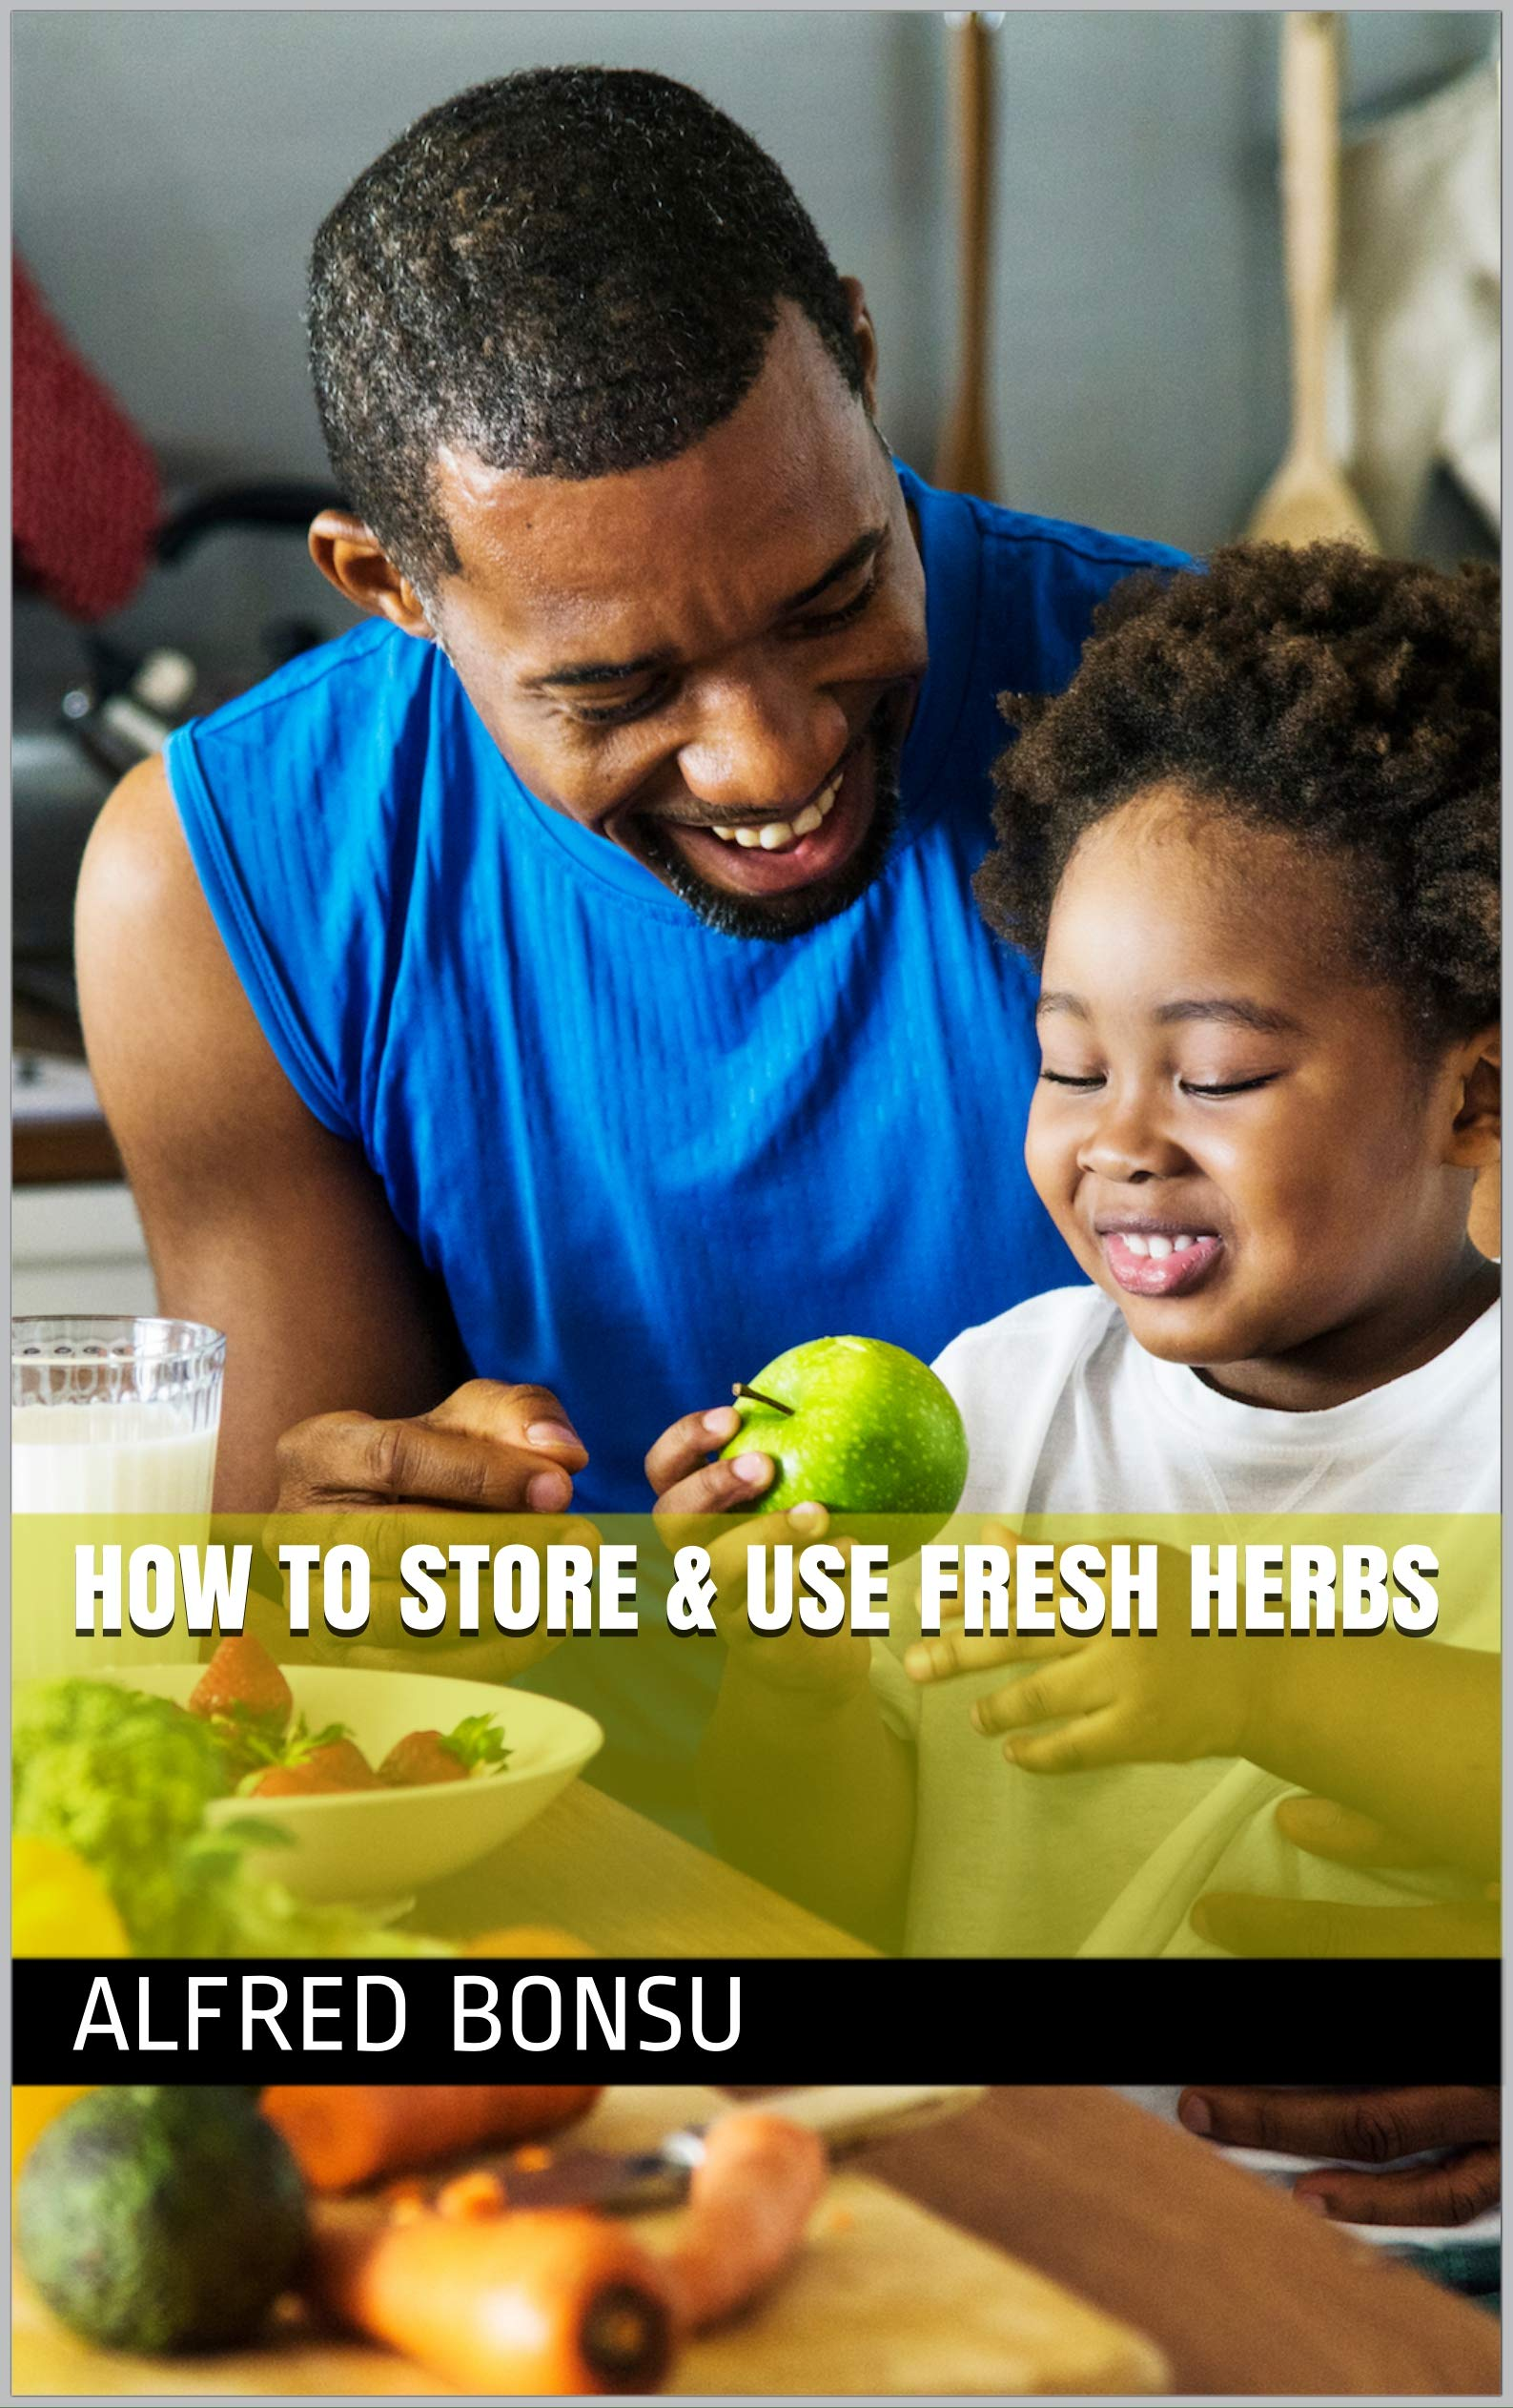 HOW TO STORE & USE FRESH HERBS